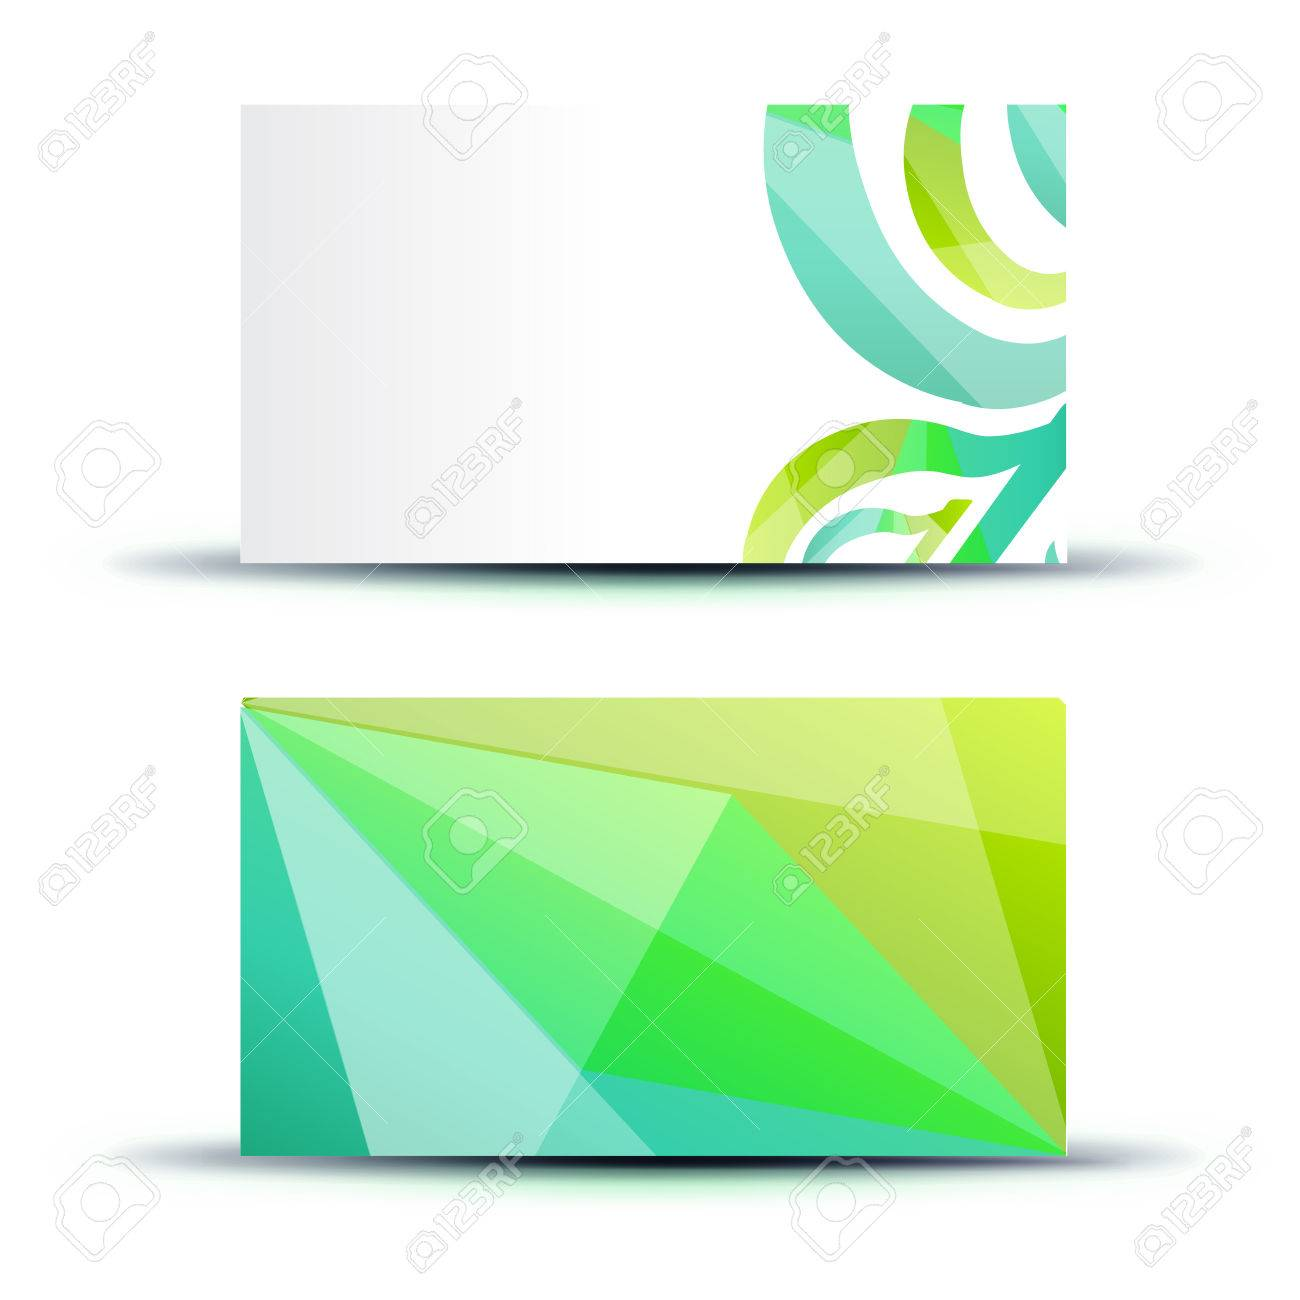 Abstract blank name card template for business artwork eps 10 abstract blank name card template for business artwork eps 10 stock vector 81884513 flashek Image collections